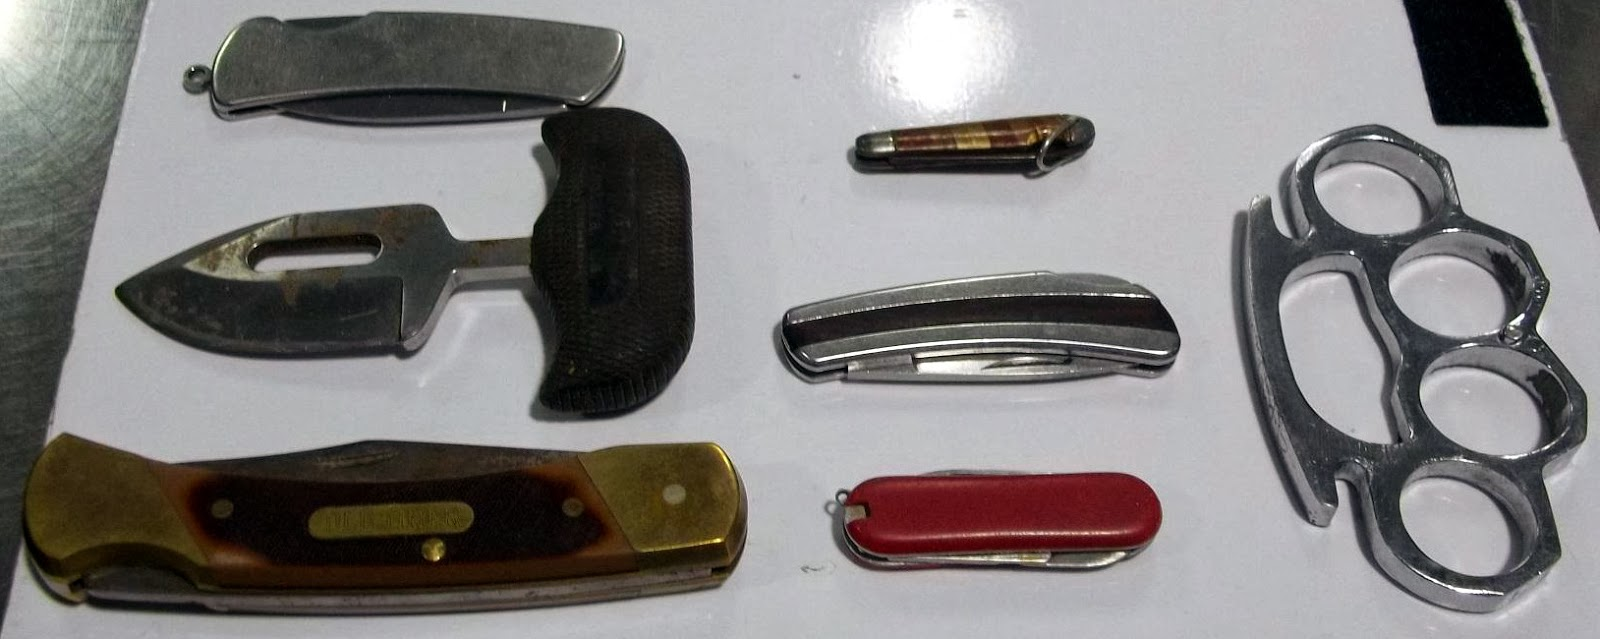 Knives Discovered in One Passenger's Bag at CLT